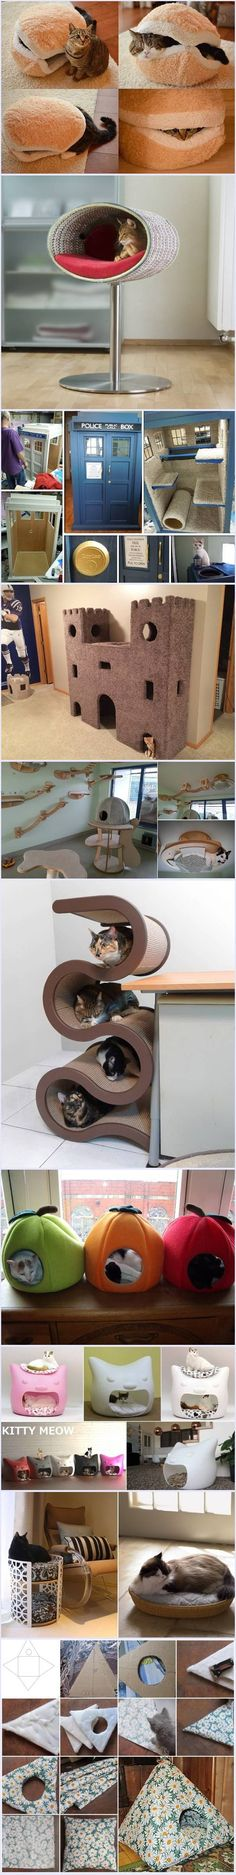 Awesome Furniture Design Ideas For Cat Lovers